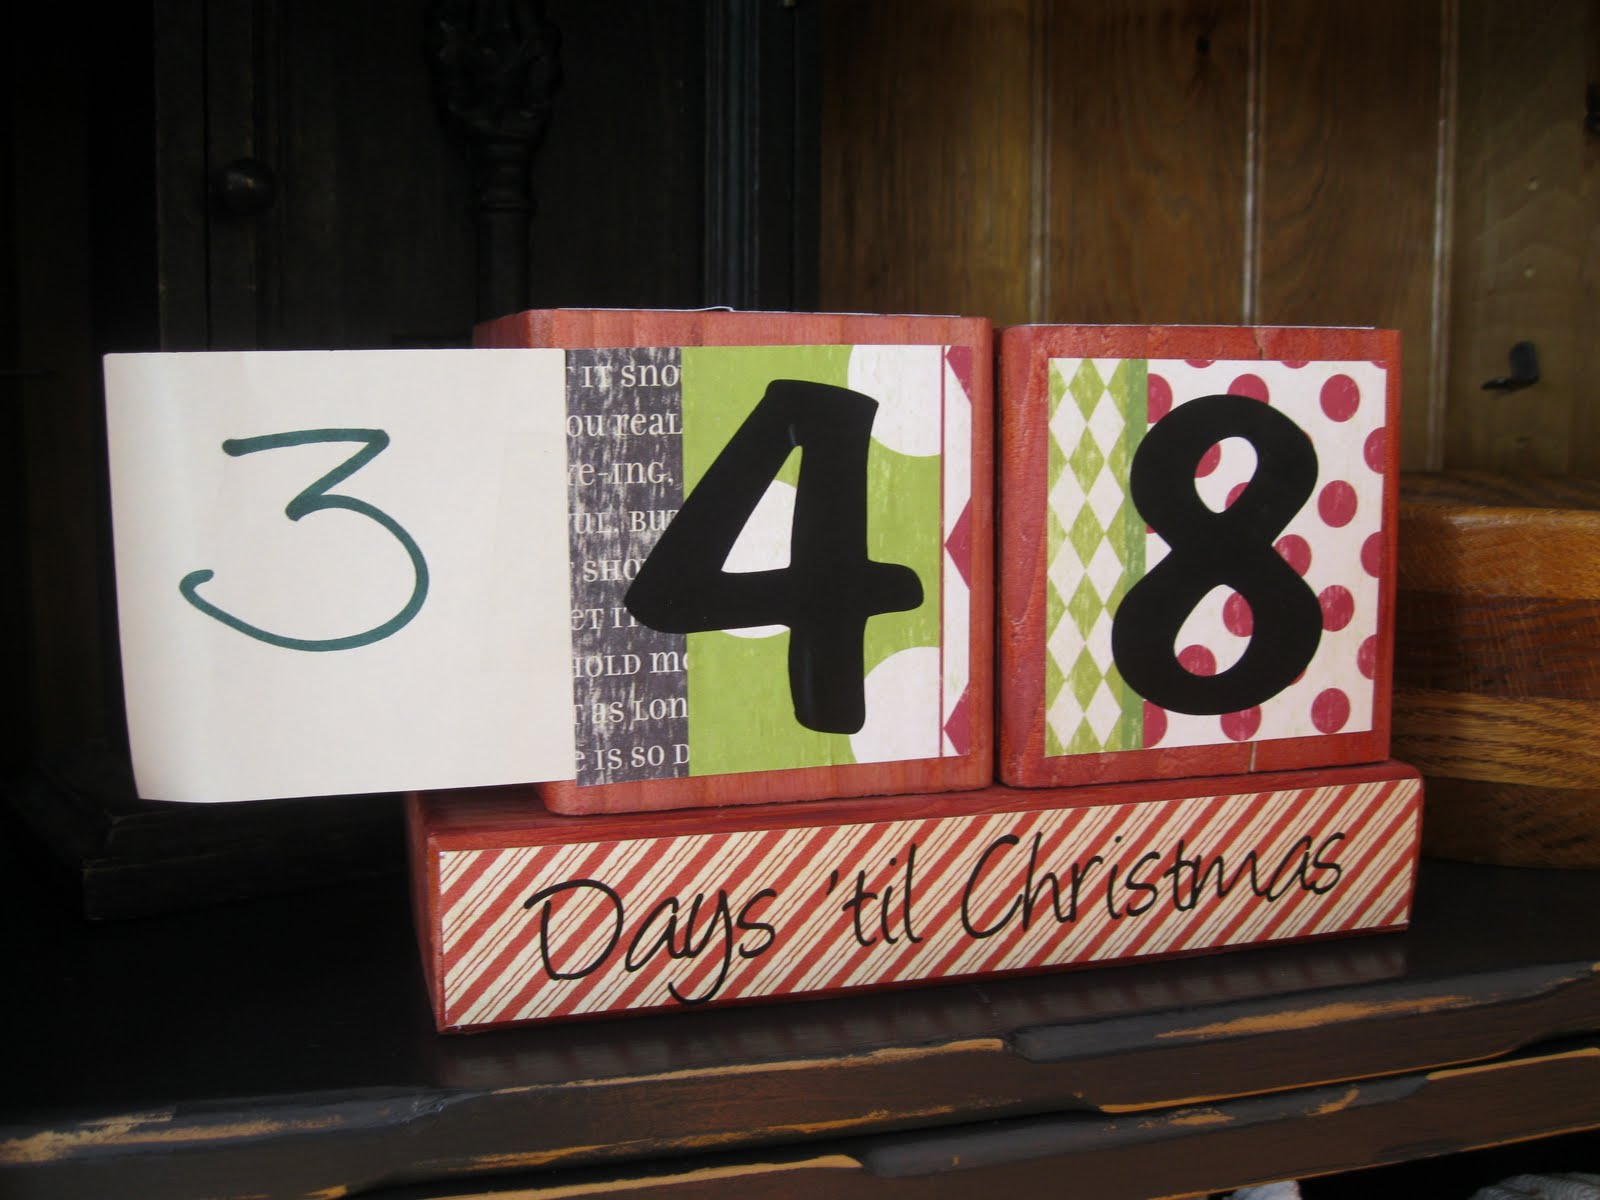 Crystelle Boutique Blog: How many days until Christmas?